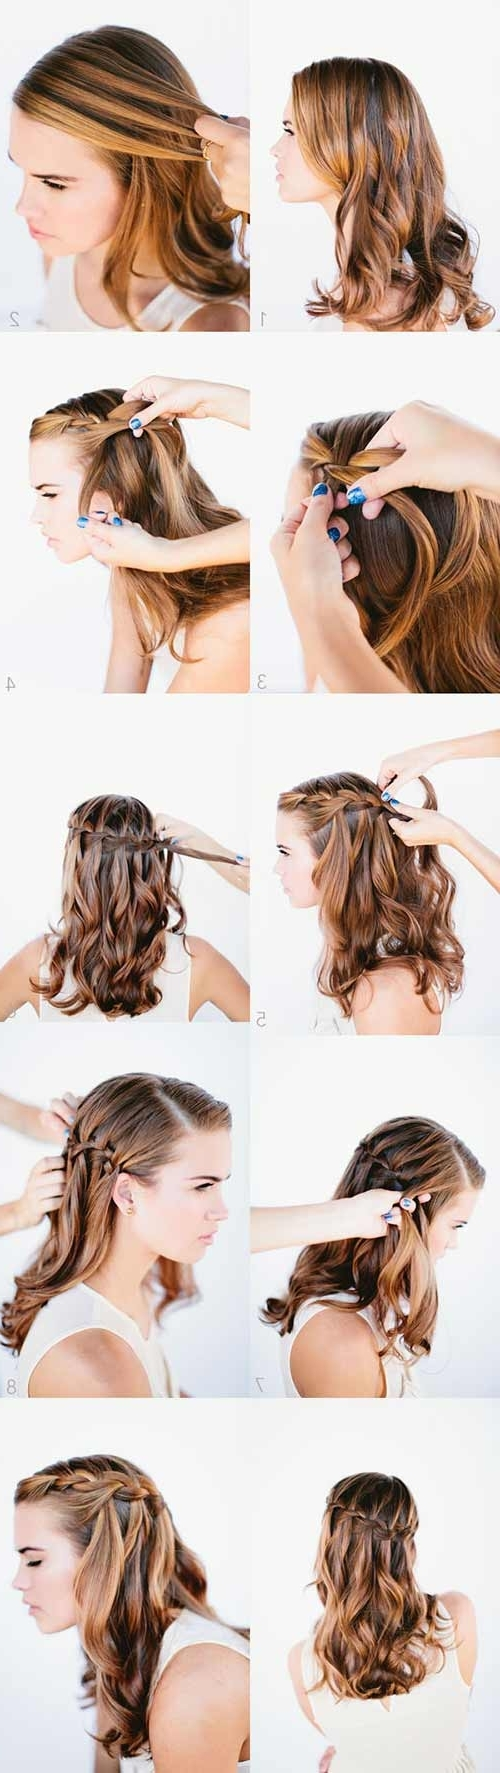 Current Botticelli Ponytail Hairstyles Intended For 20 Amazing Hairstyles For Curly Hair For Girls (View 2 of 20)